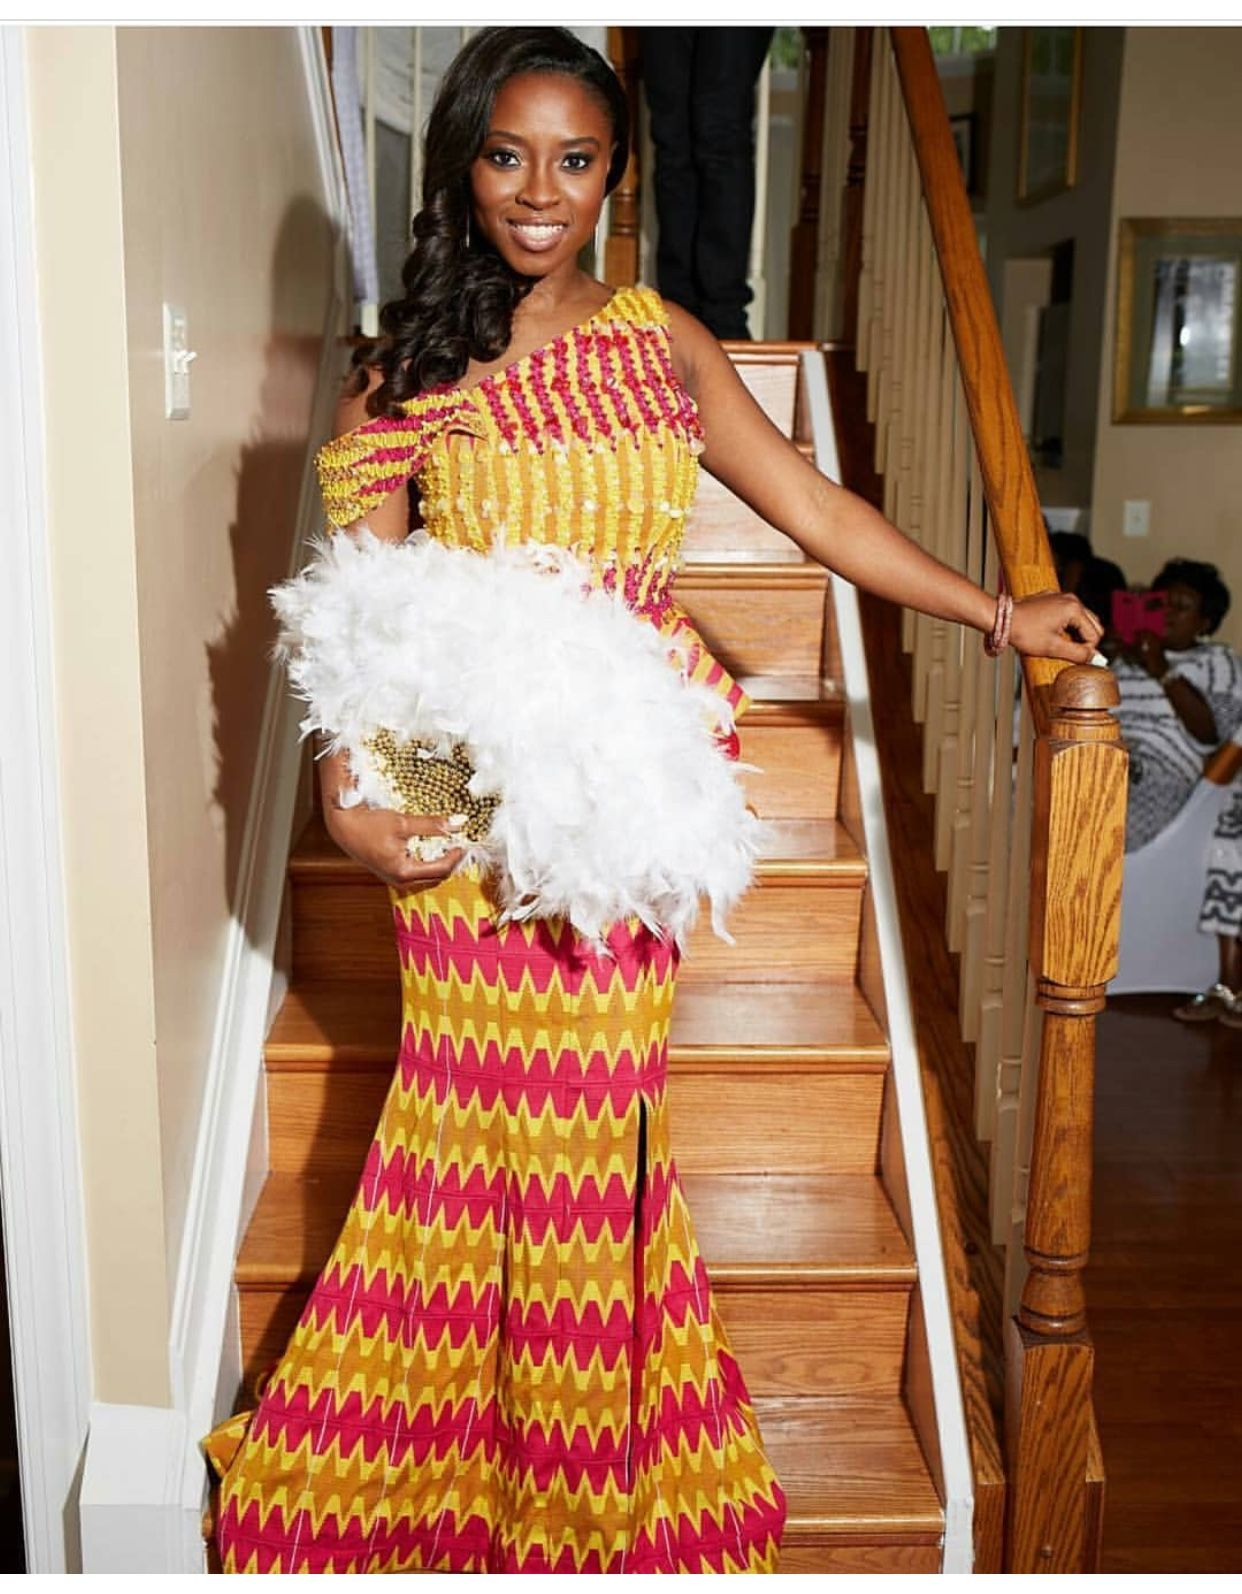 Slay queen in her kente in her traditional marriage day kente